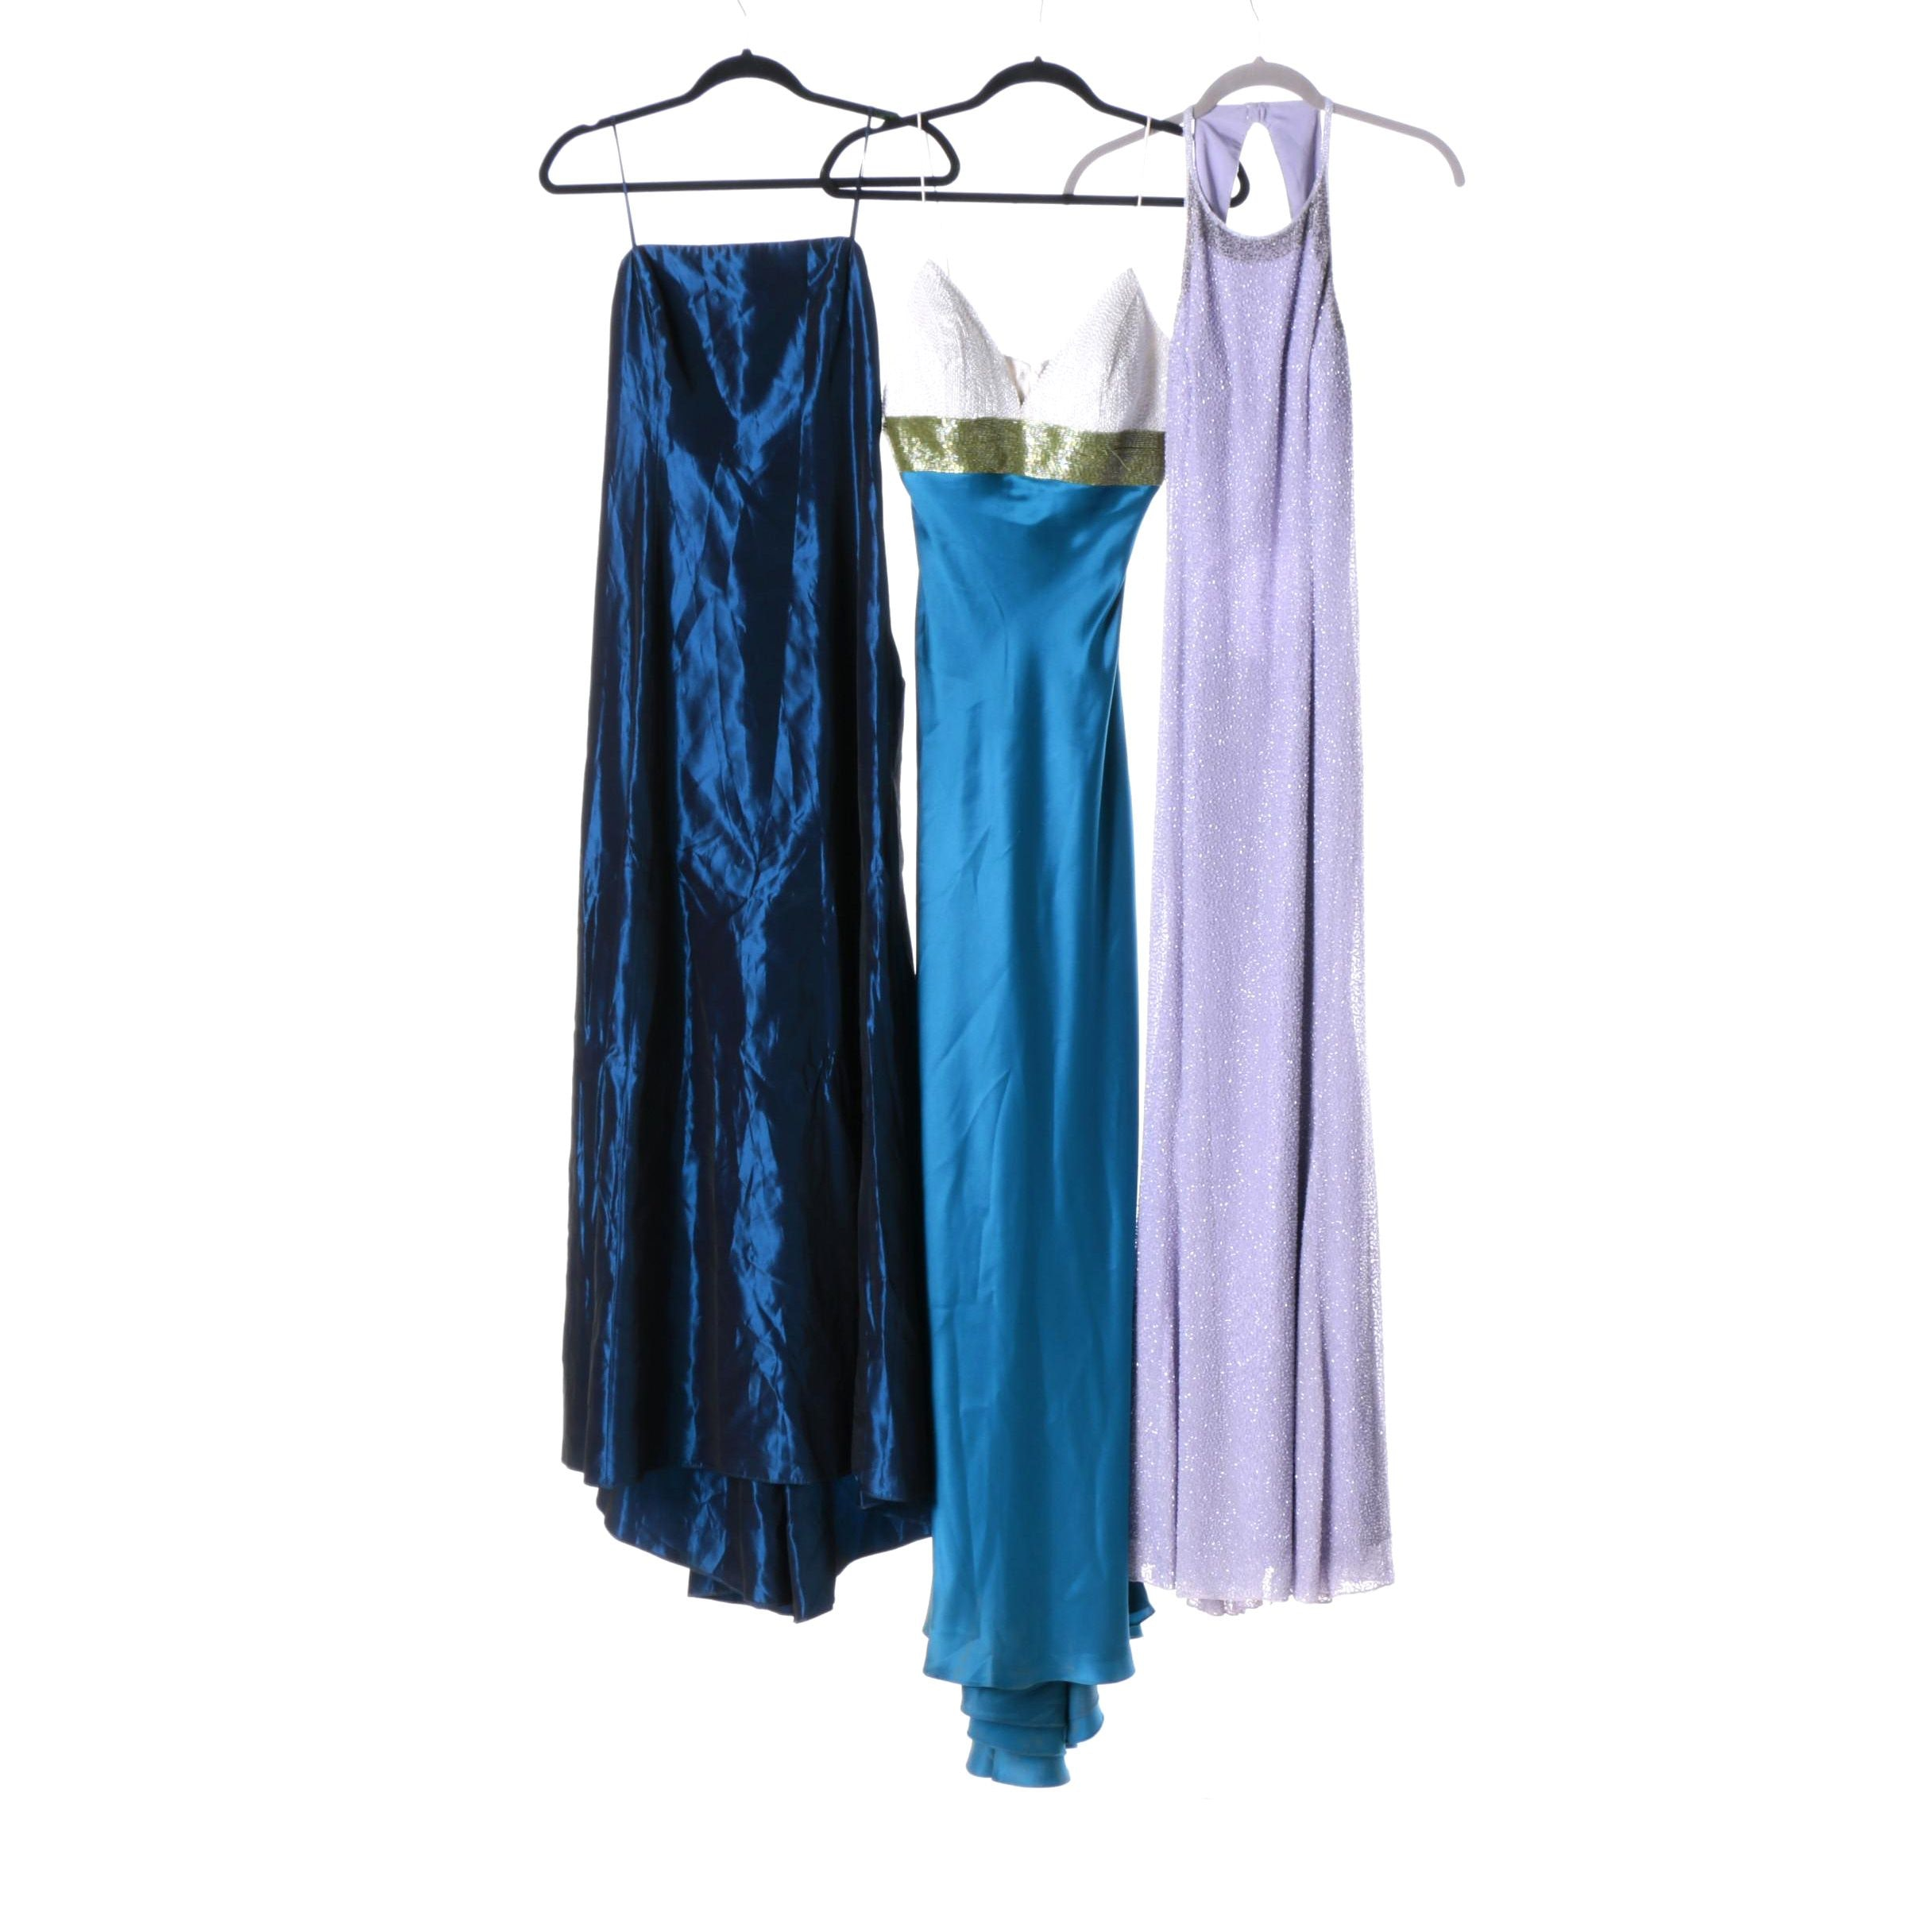 Jewel-Tone and Beaded Evening Dresses Including Lillie Rubin